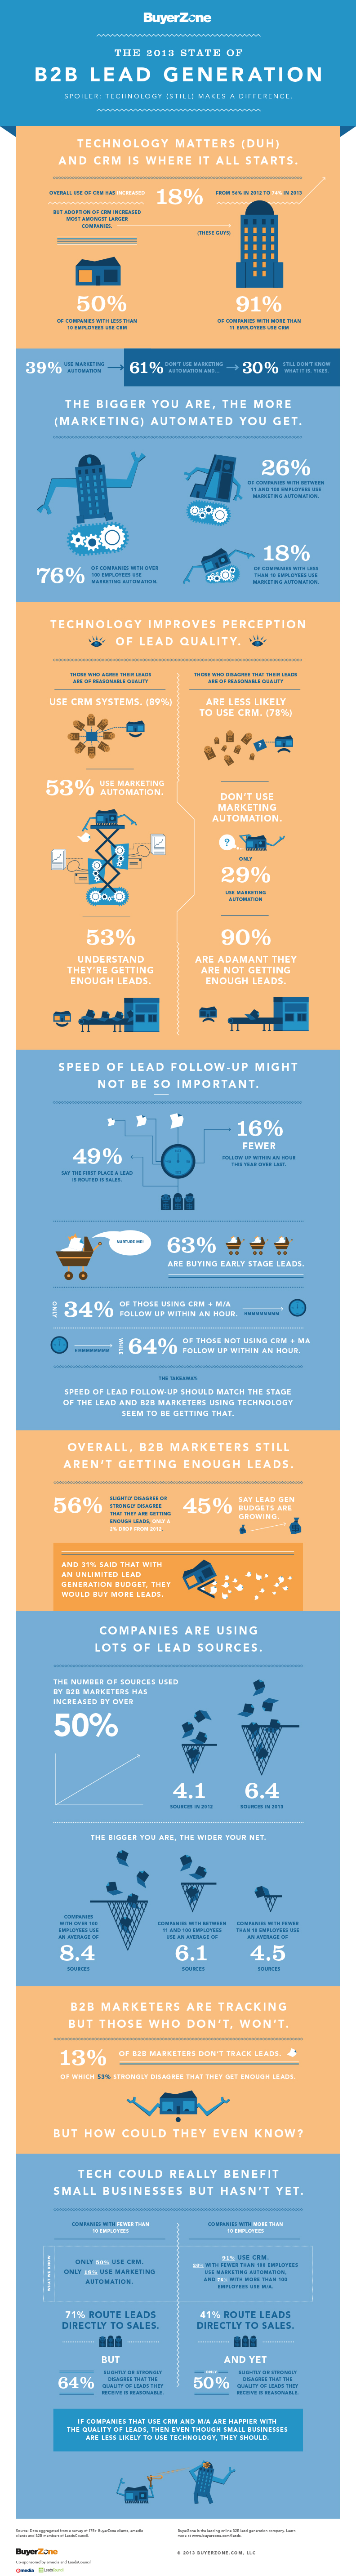 Leadgeneratie in B2B 2013 Infographic